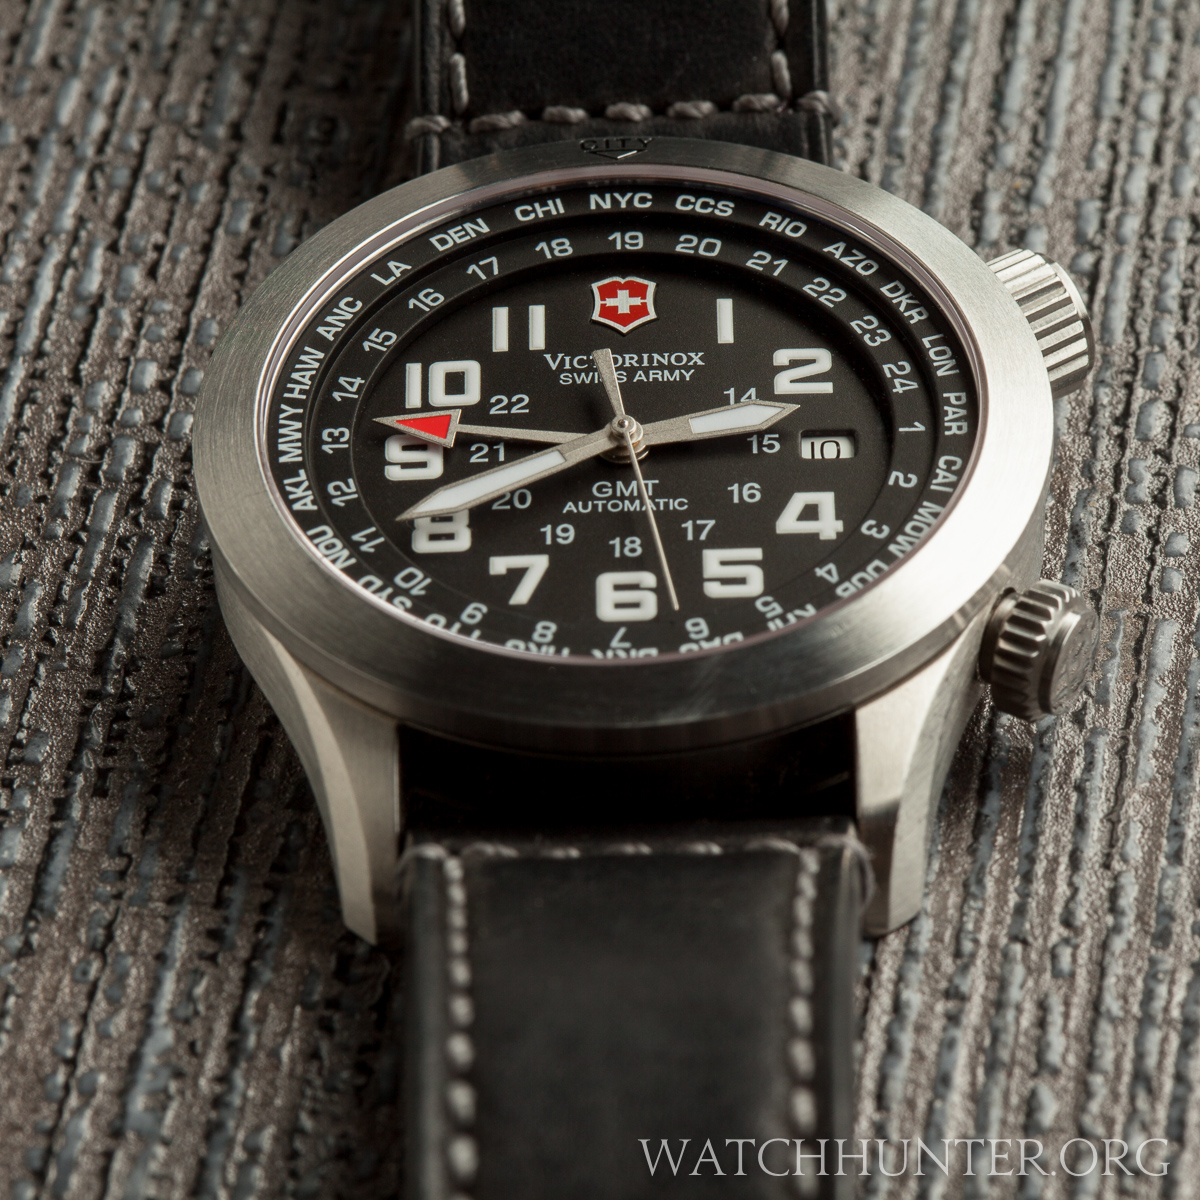 MEET THE WATCH: Victorinox Swiss Army Airboss Mach 5 GMT